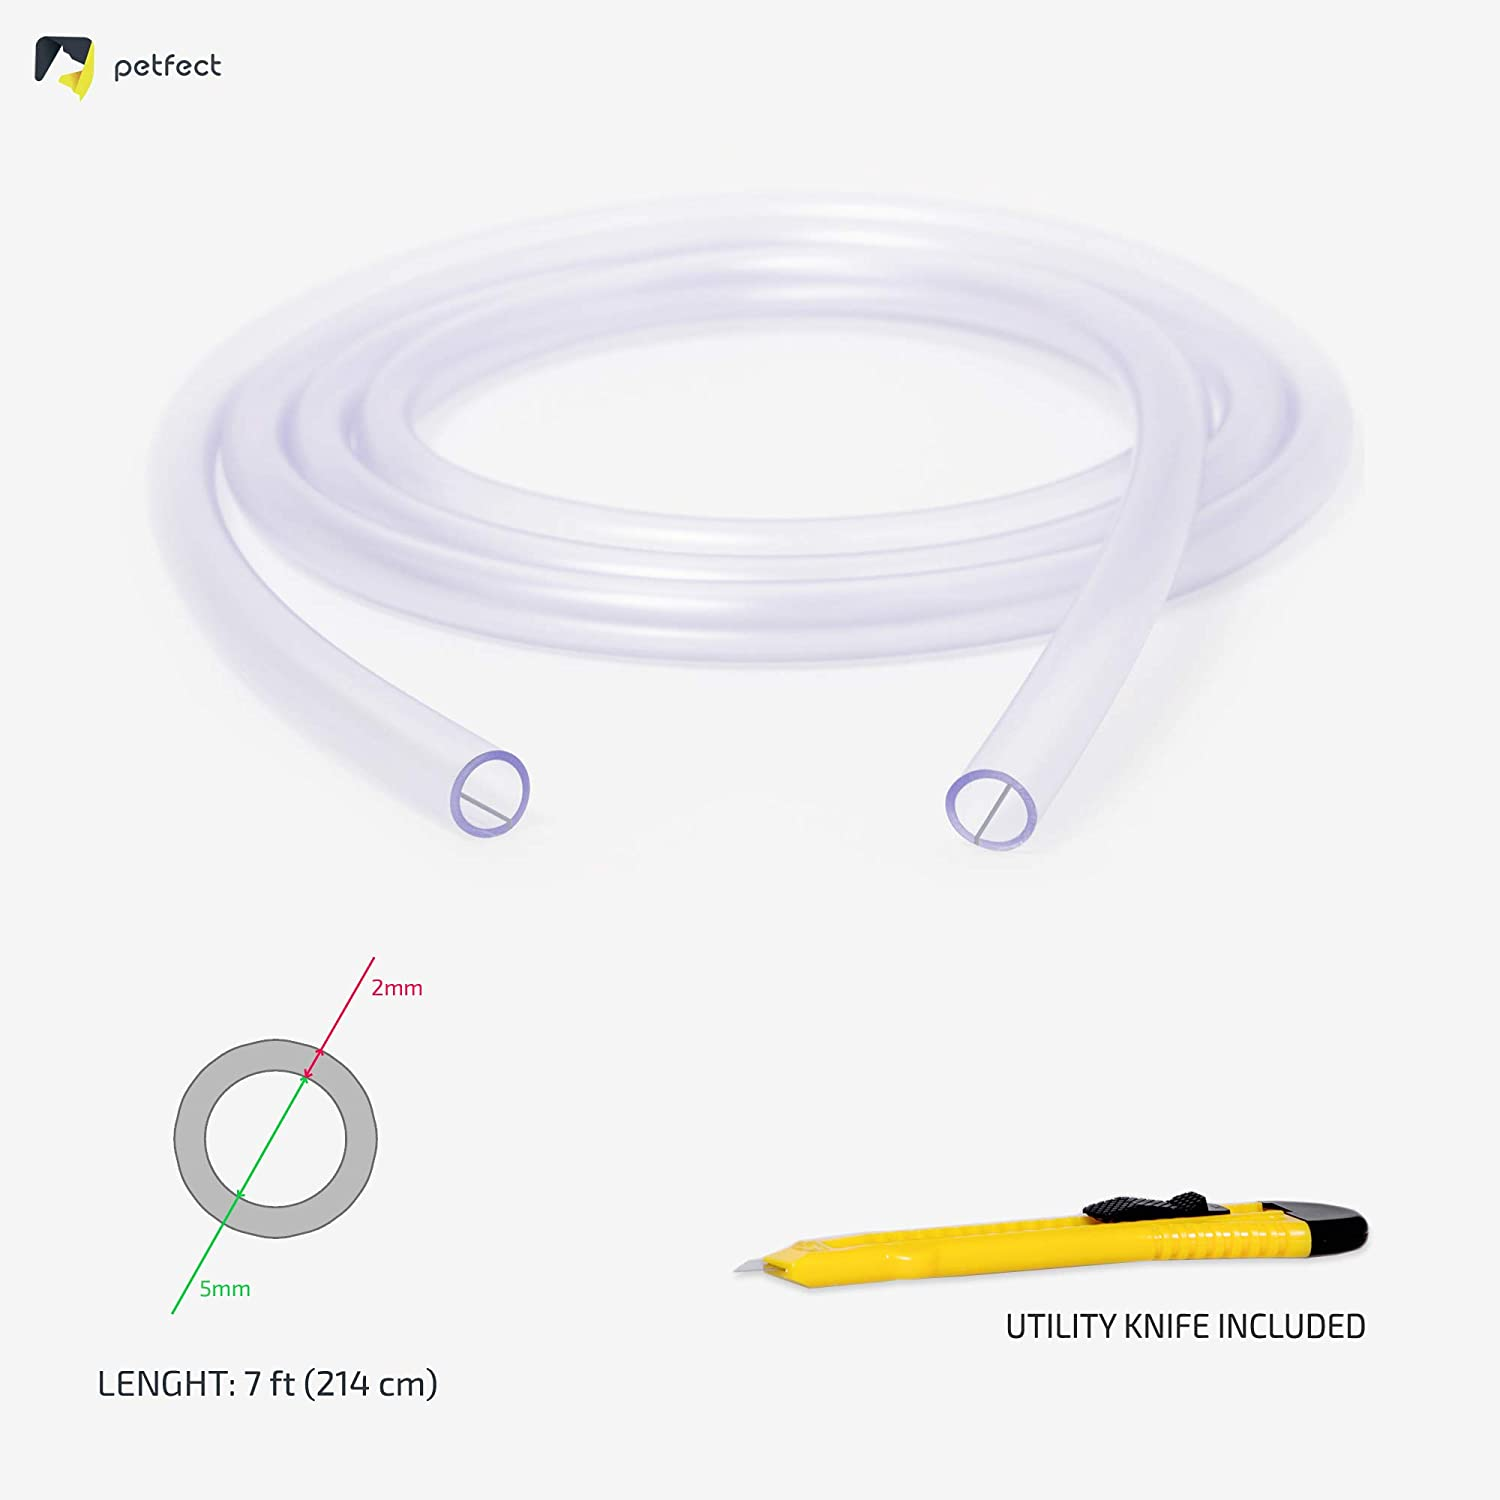 Pet Wire Protector Flexible Cable Sleeve 7ft 2mm Thick Overfloor Universal Protection Usb Rca Hdmi Cables Odor Free Cat Dog Chew Proof Electrical Power Charger Cord Cover For Lighting